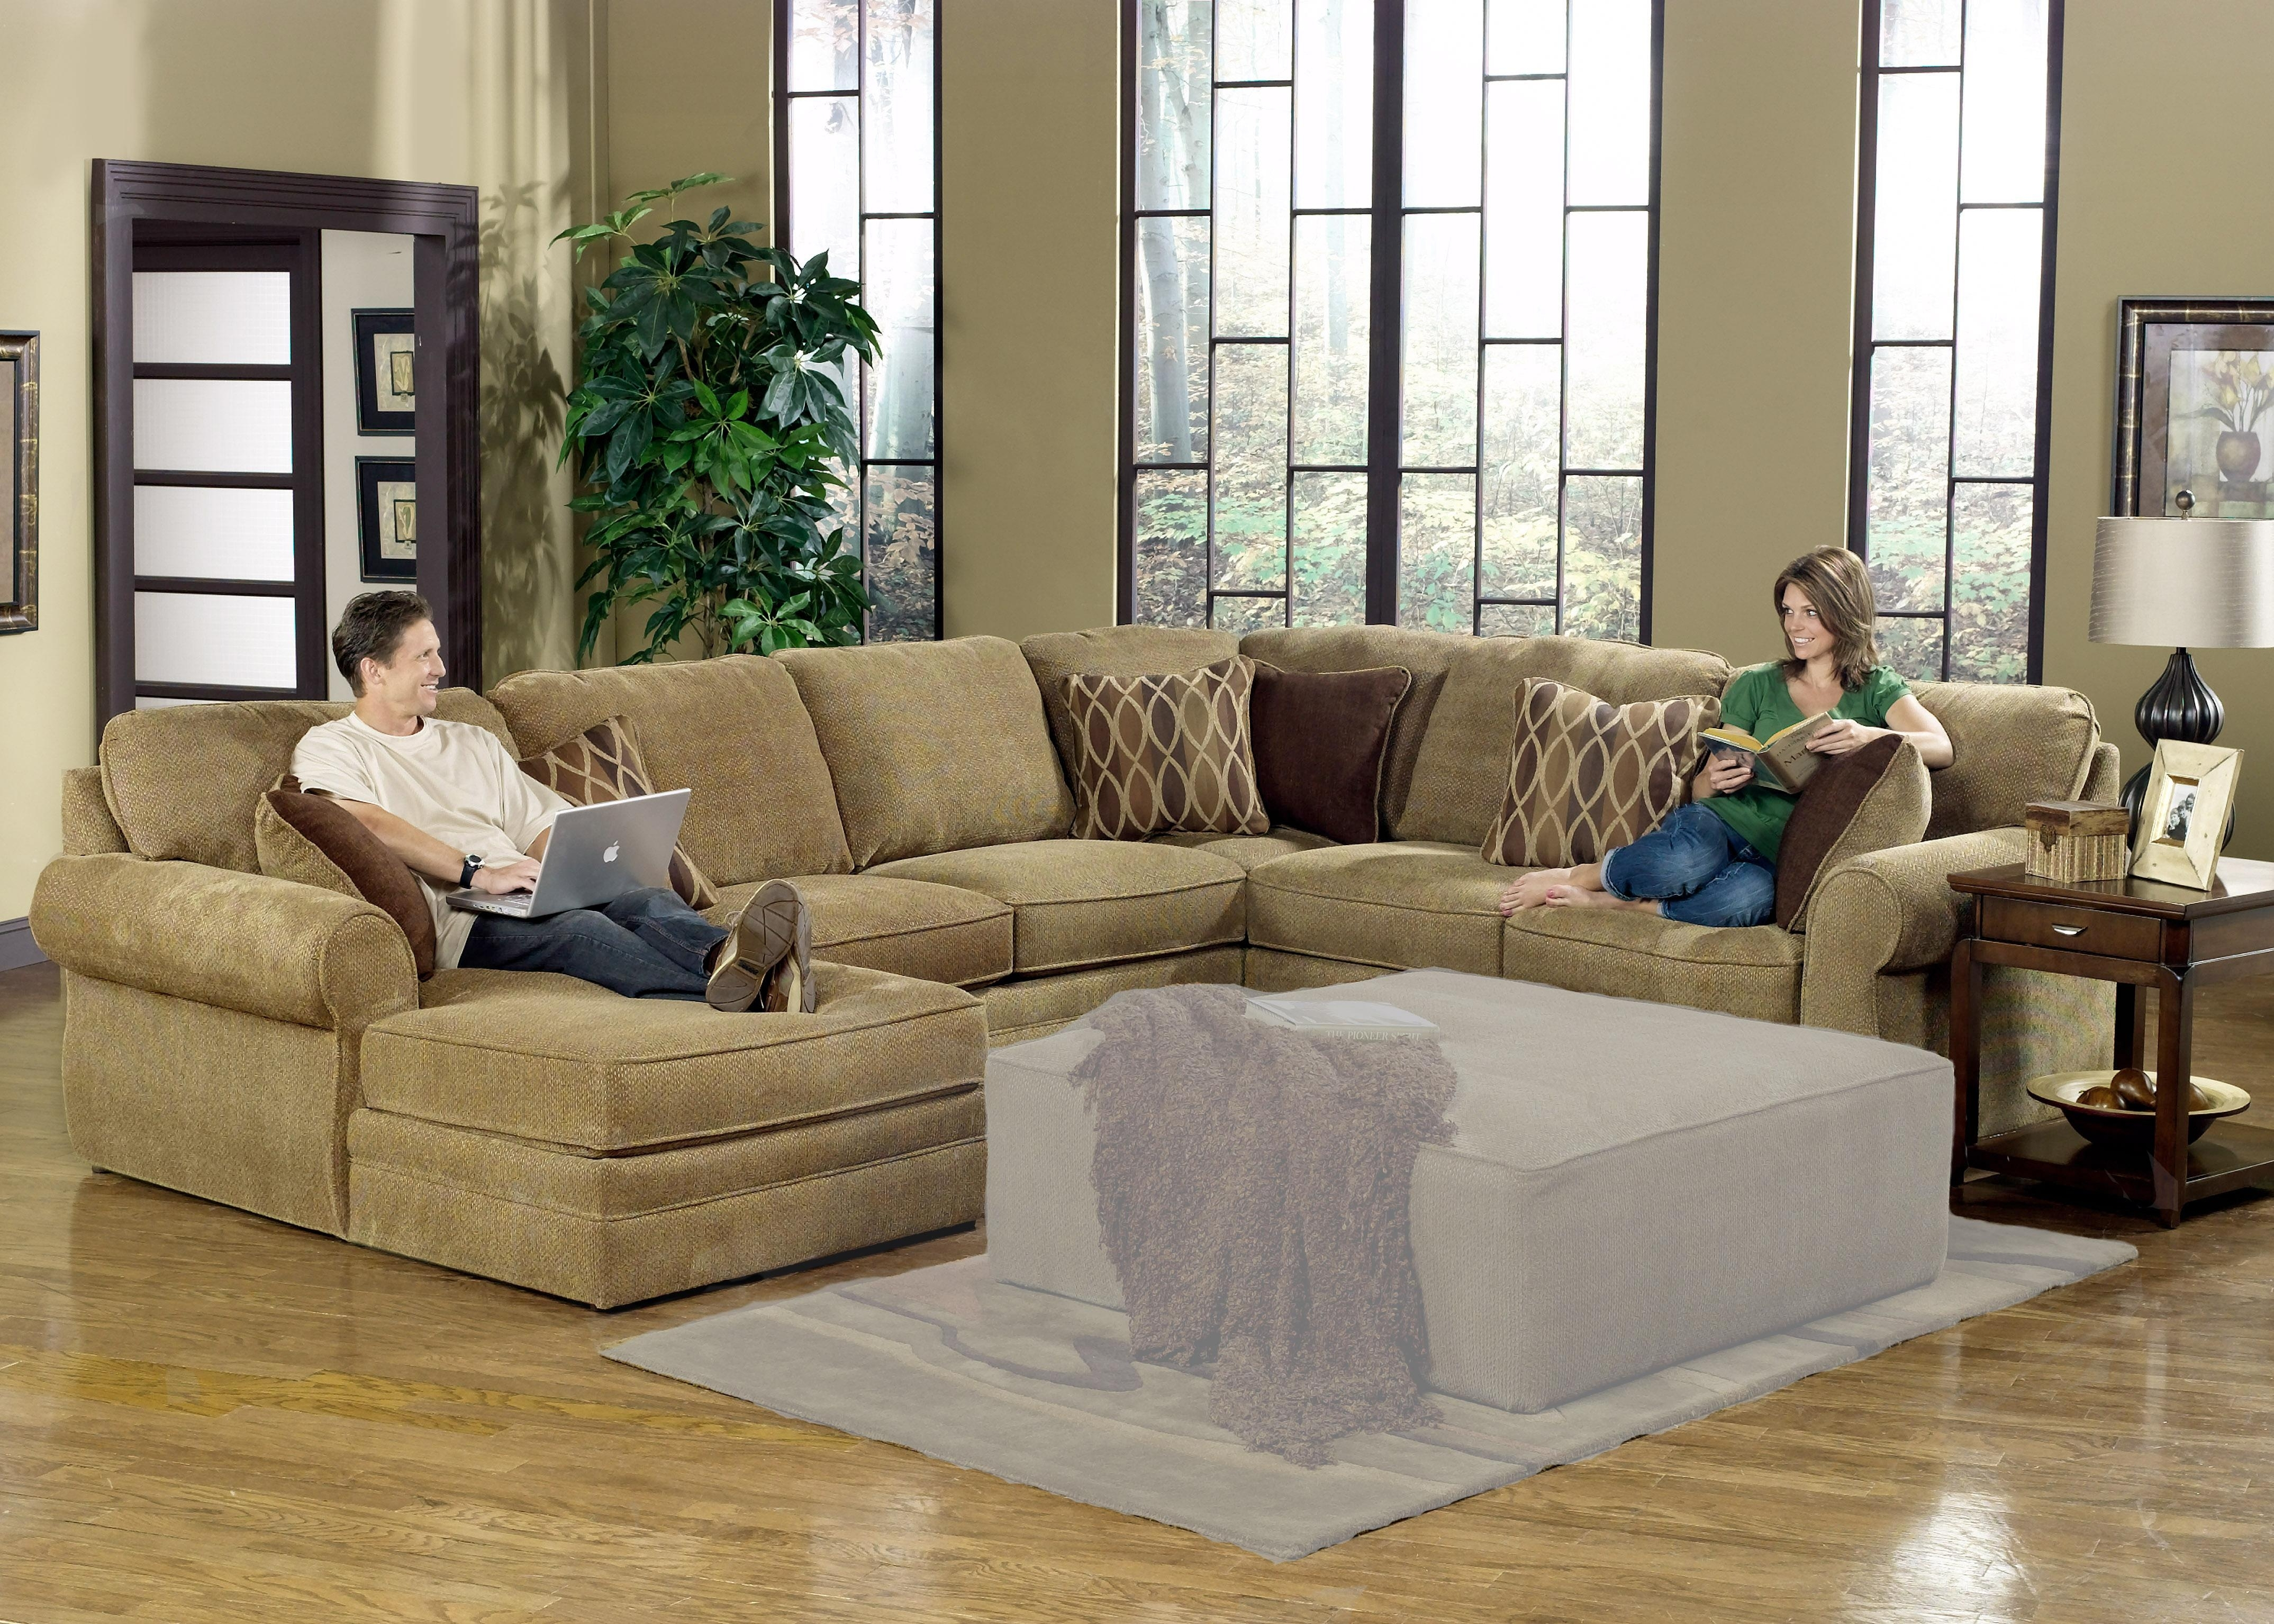 Sofas Center Utional Sofa Awesome Images Design Best Ideas About In C Shaped Sectional Sofa (Image 14 of 15)